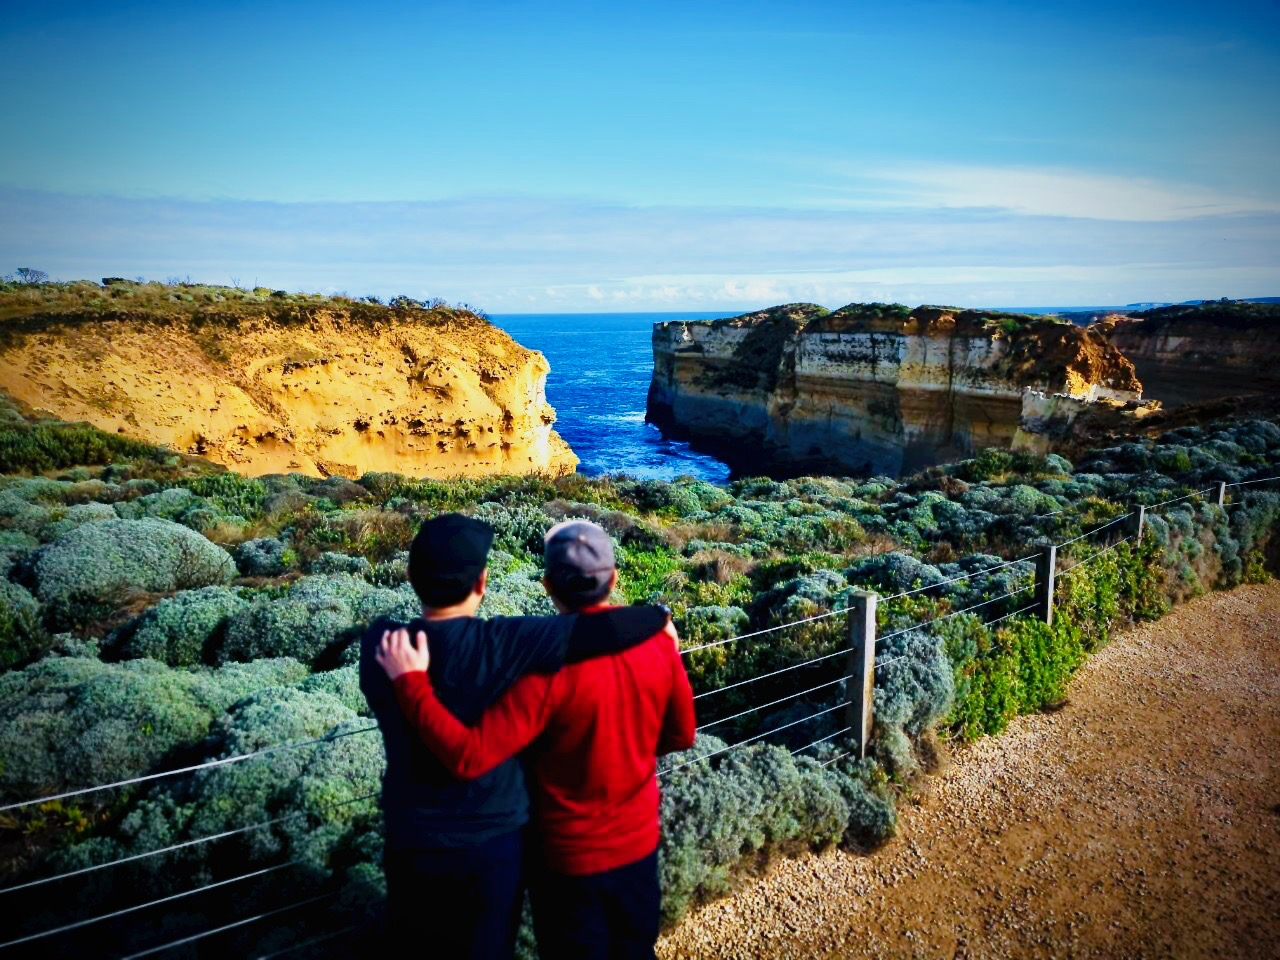 3rd day of our road trip finishes at The 12 Apostles.